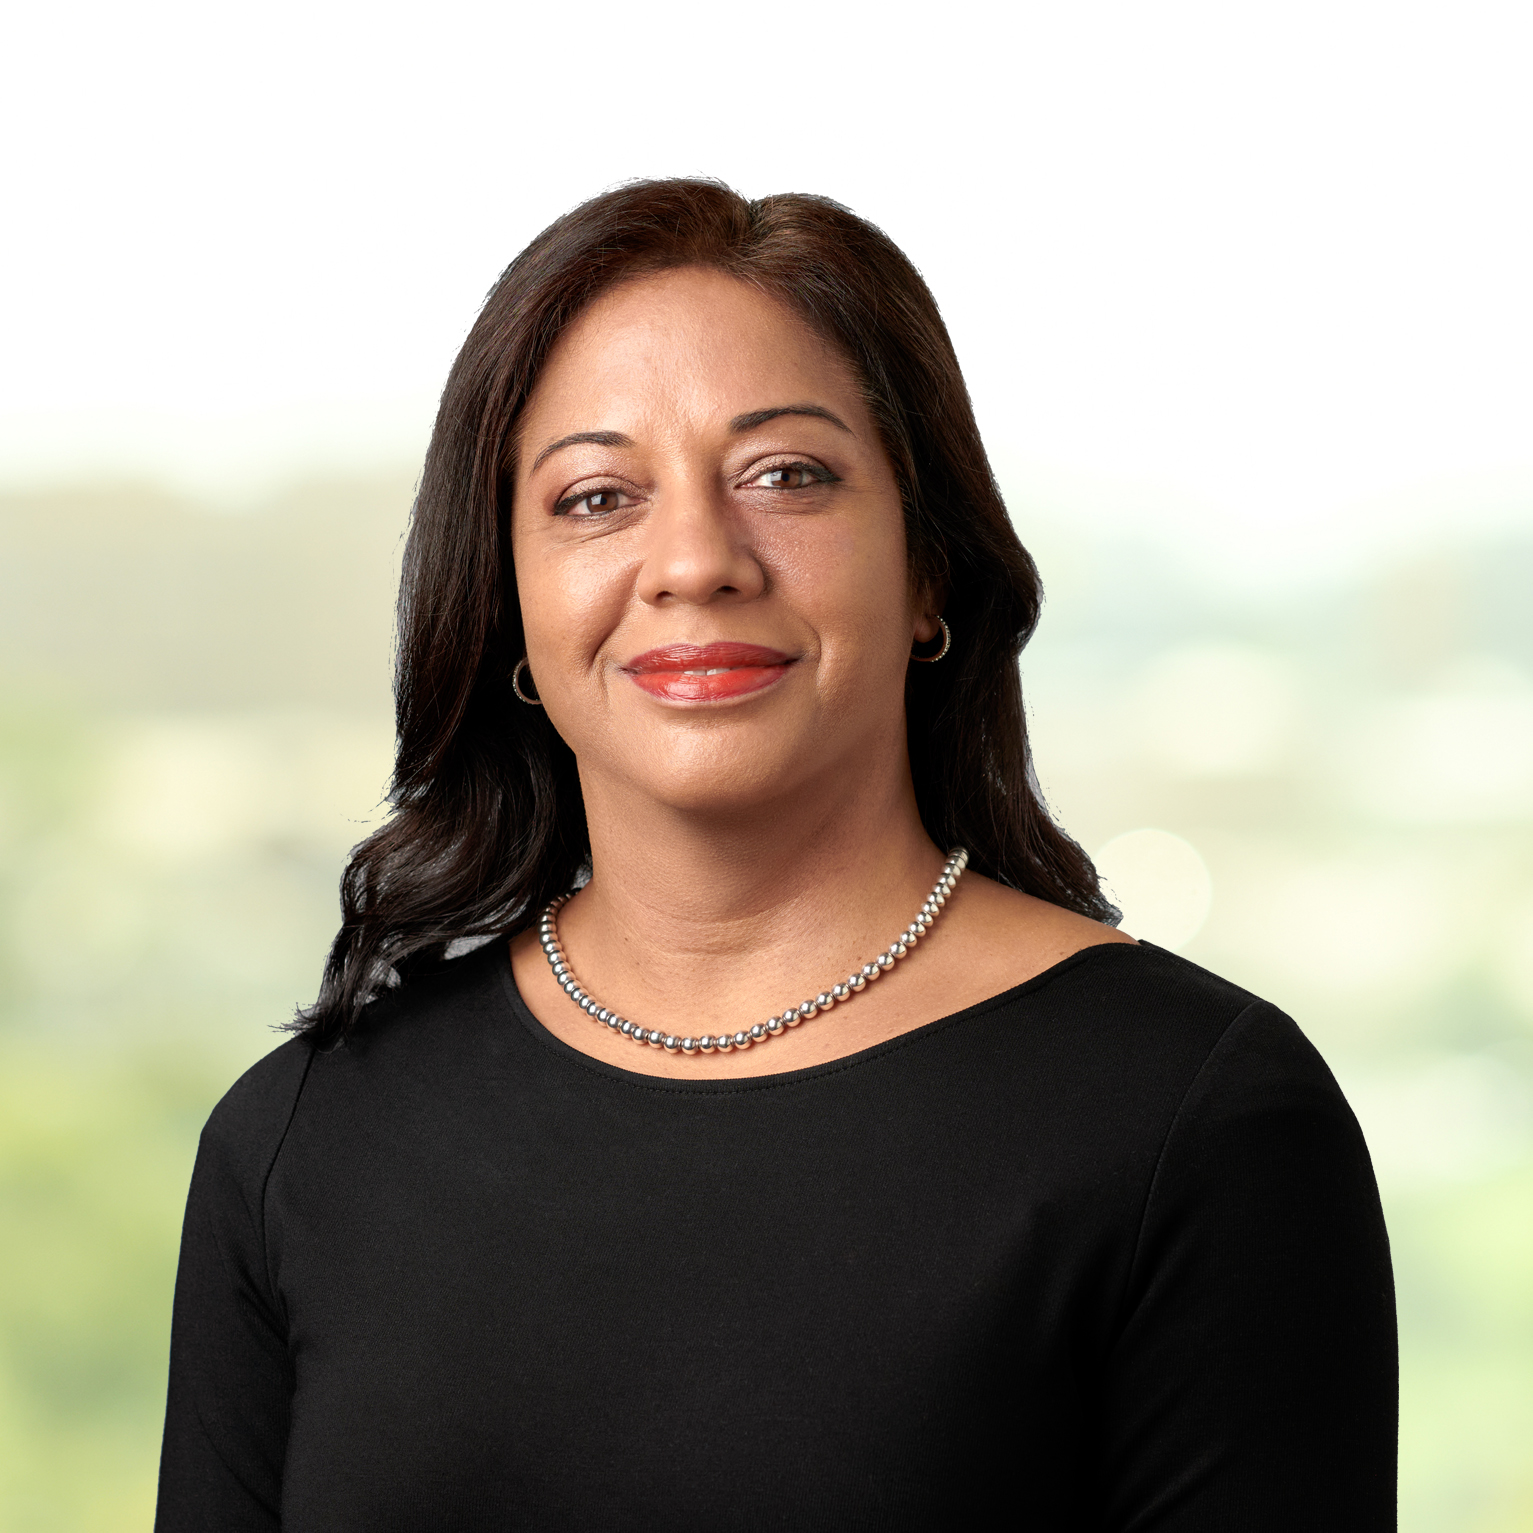 Lisa Ali - Chief People and Sustainability Officer (CPSO)